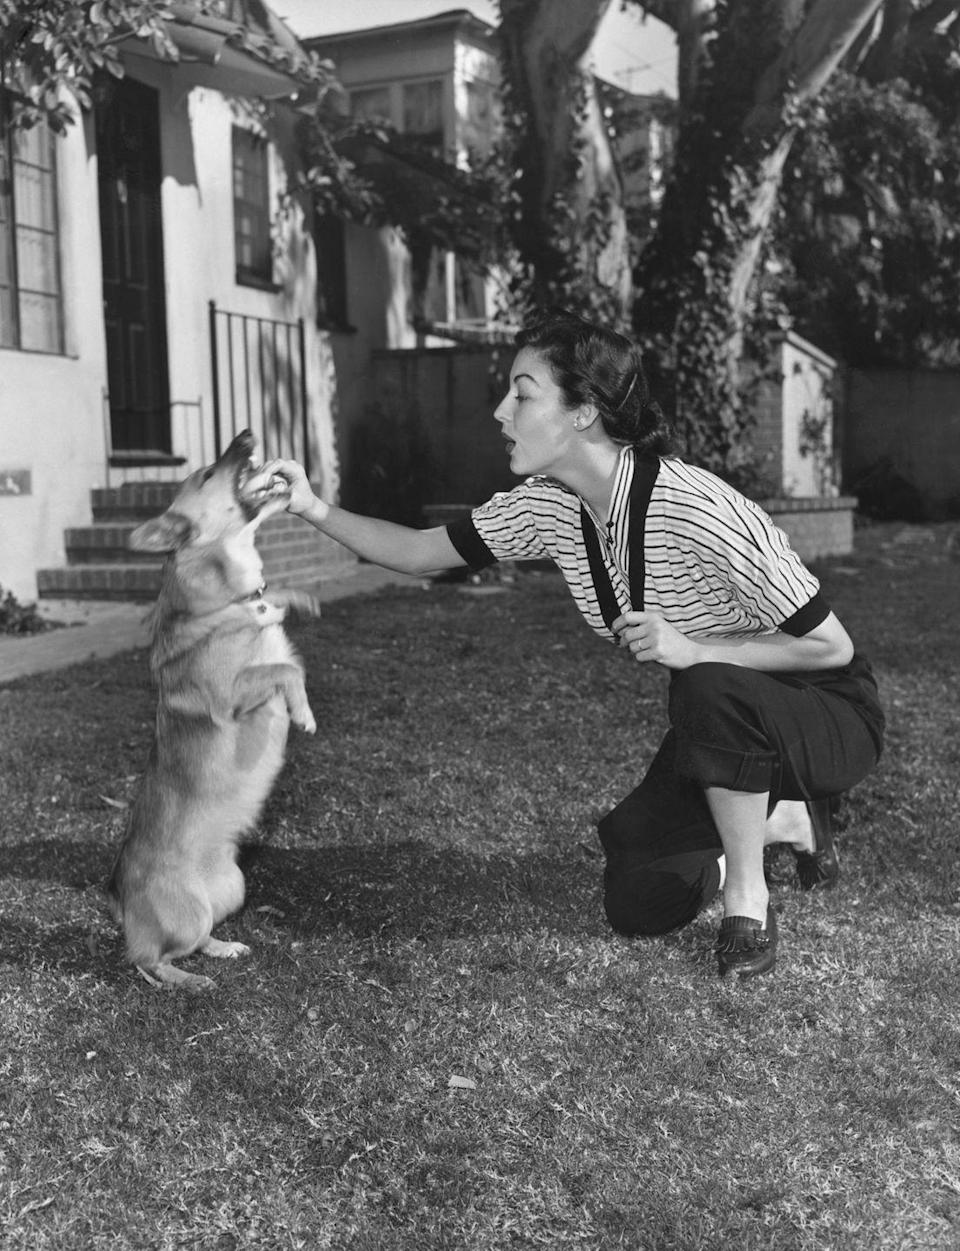 """<p>Ava Gardner's beloved Corgi, Rags, was a gift to the film star by her third husband, Frank Sinatra. Rags served as Ava's introduction to the breed and <a href=""""http://thedailycorgi.com/2015/04/famous-corgi-fans-ava-gardner.html"""" rel=""""nofollow noopener"""" target=""""_blank"""" data-ylk=""""slk:she continued to own Corgis"""" class=""""link rapid-noclick-resp"""">she continued to own Corgis</a> for the rest of her life. </p>"""